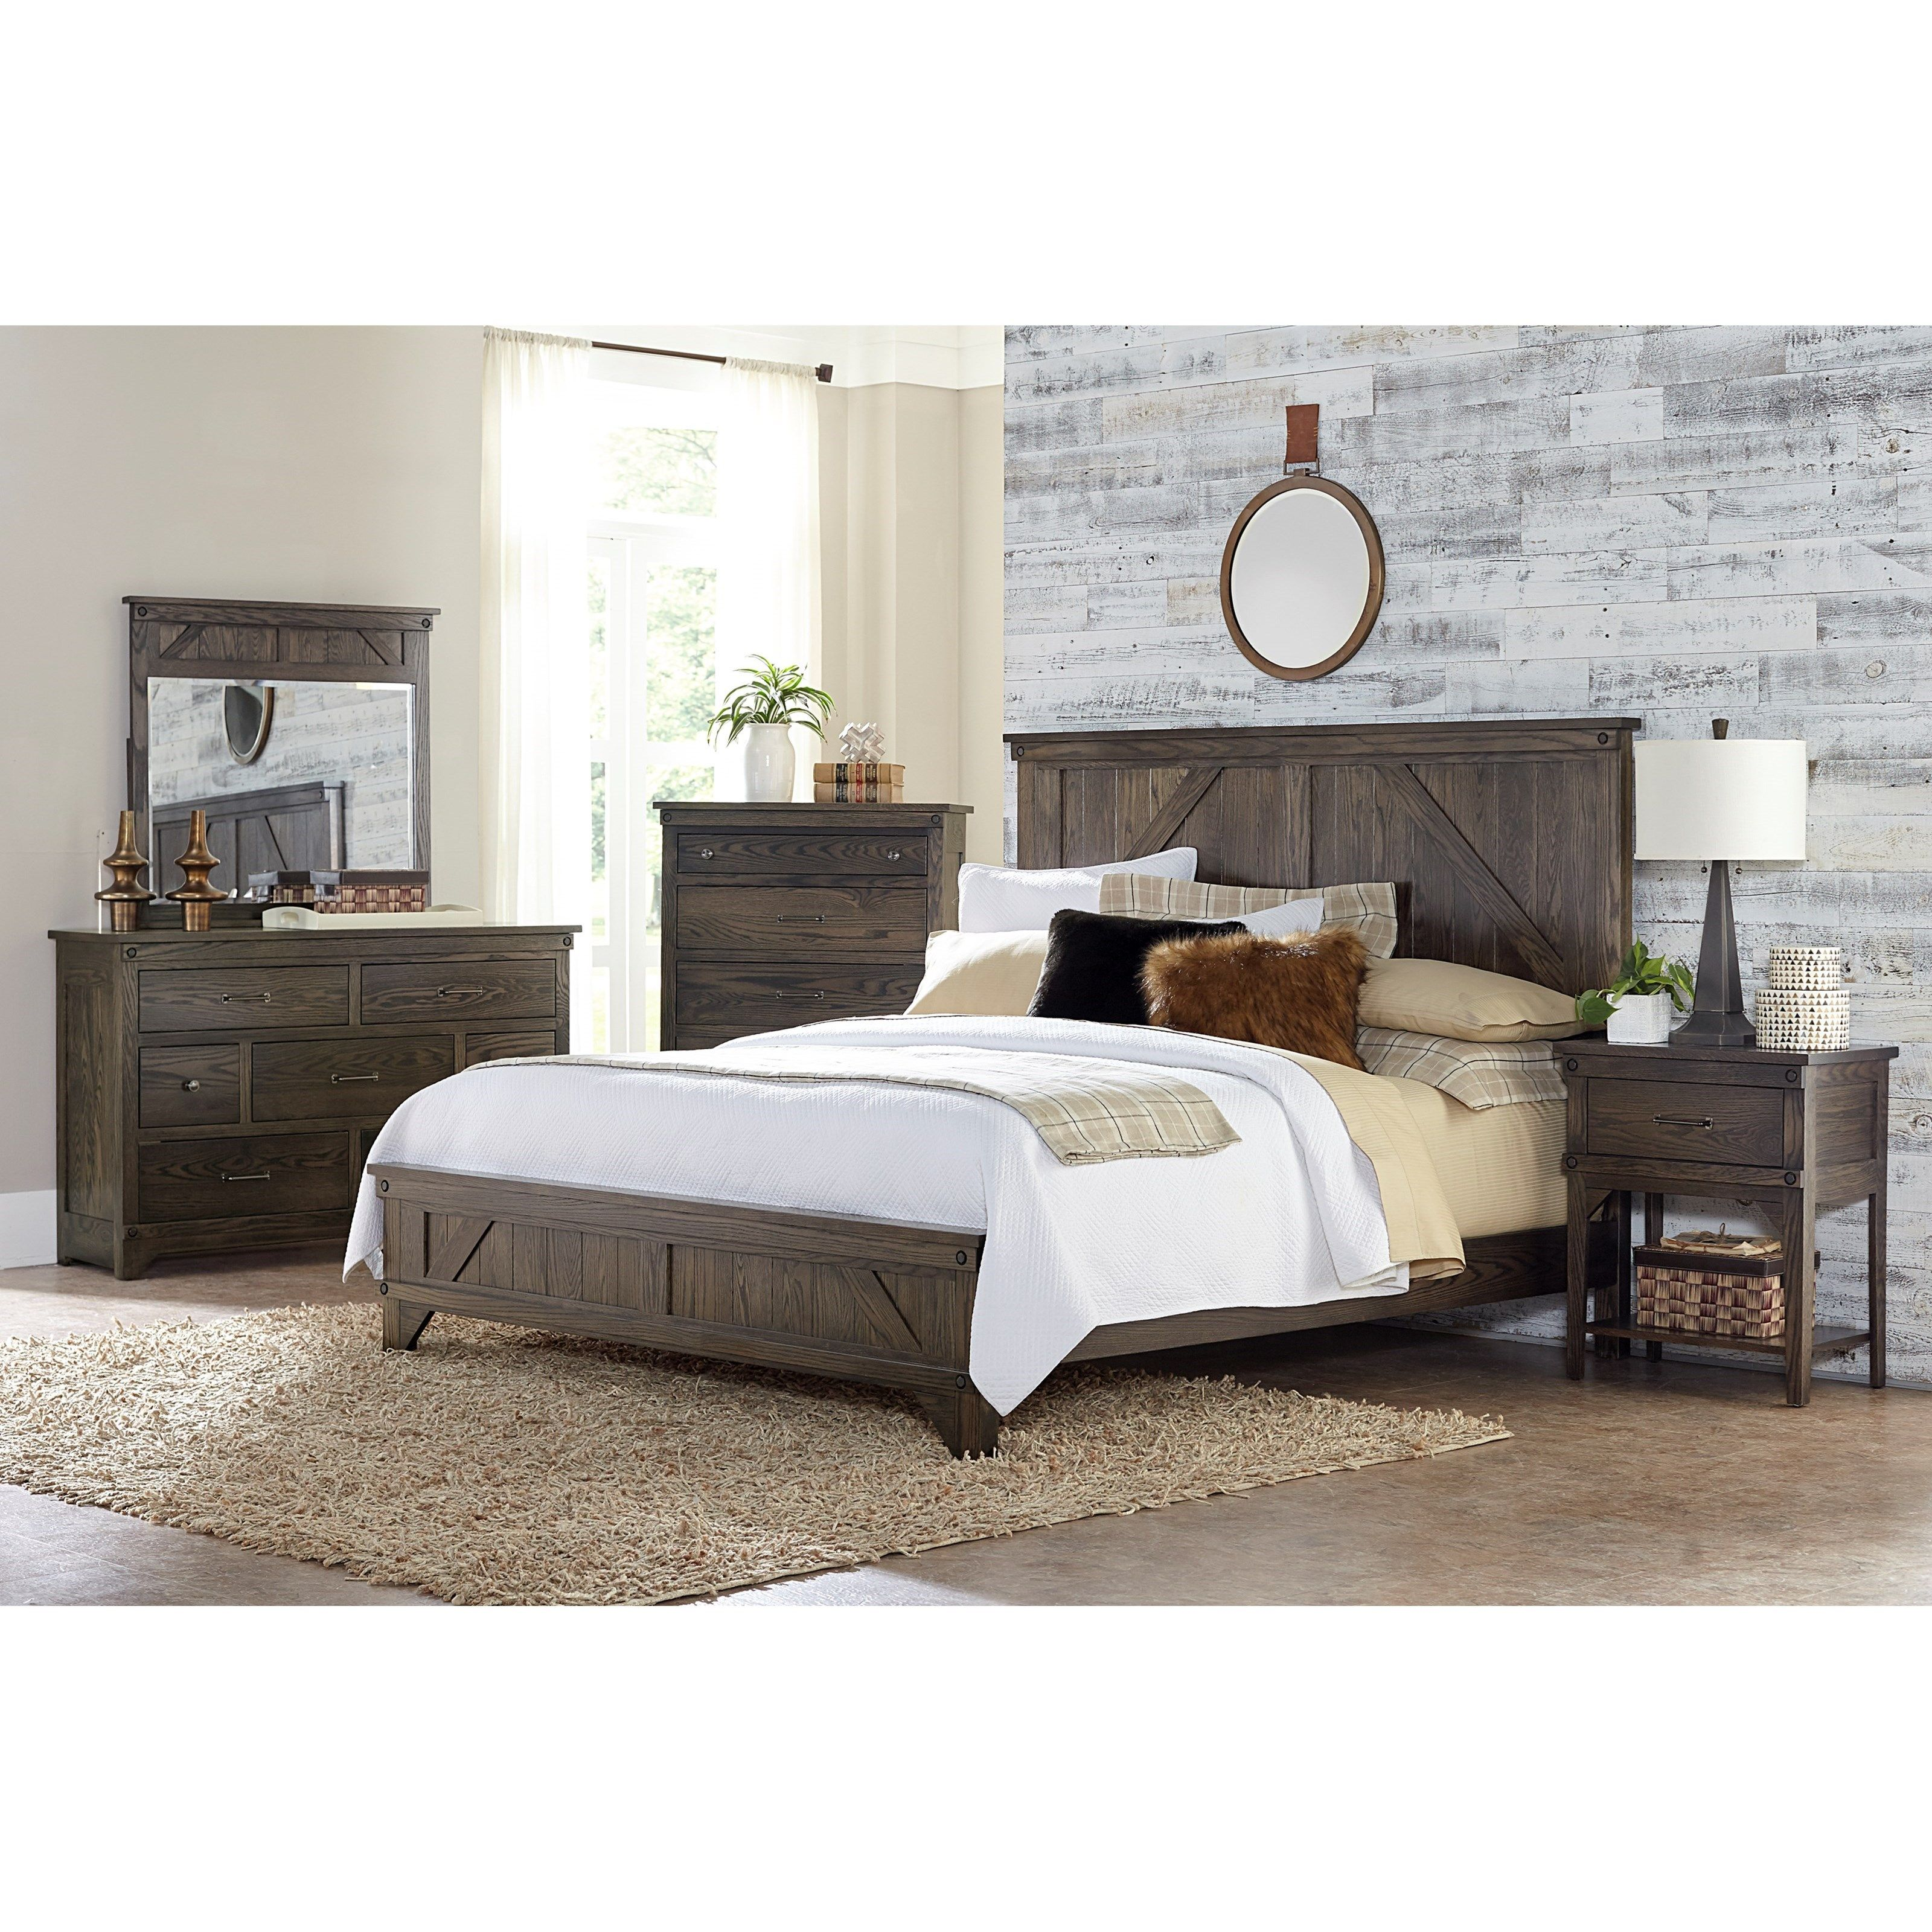 Cedar Lakes Queen Bedroom Group By Amish Impressions By Fusion Designs Available At Www Muellerfurniture Com Or In Store At Muell With Images Furniture Couches Living Room